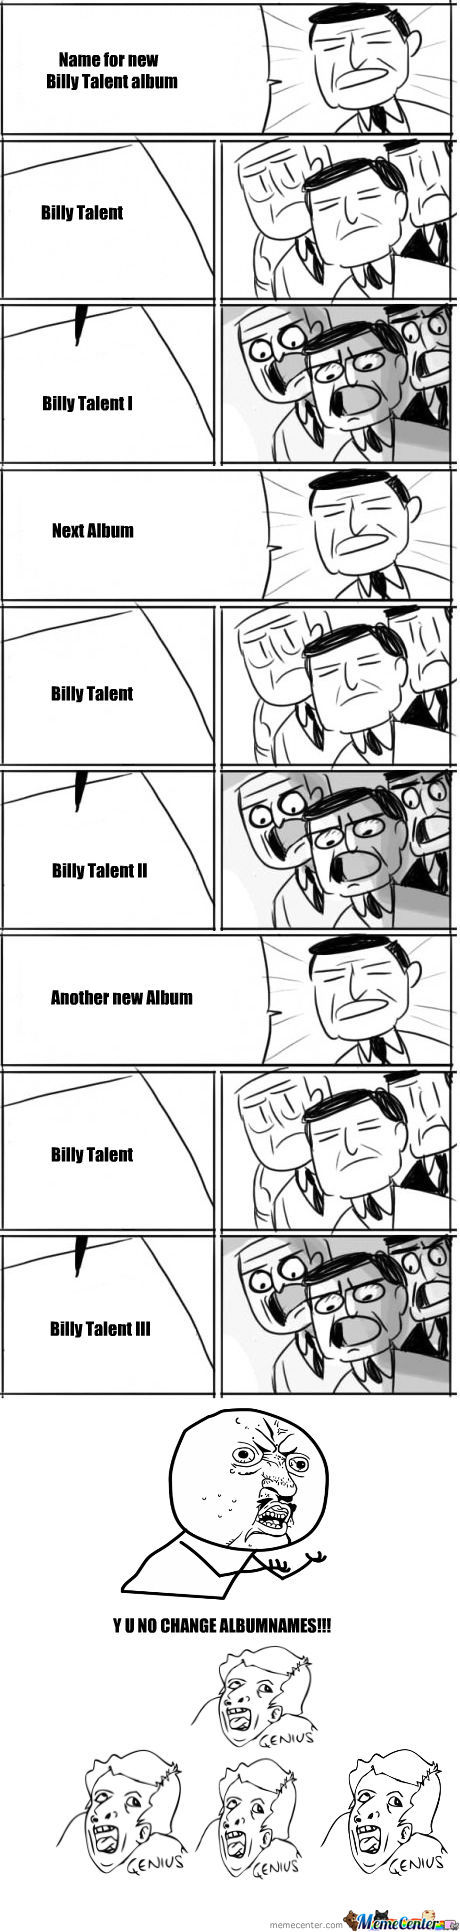 Billy Talent Genius